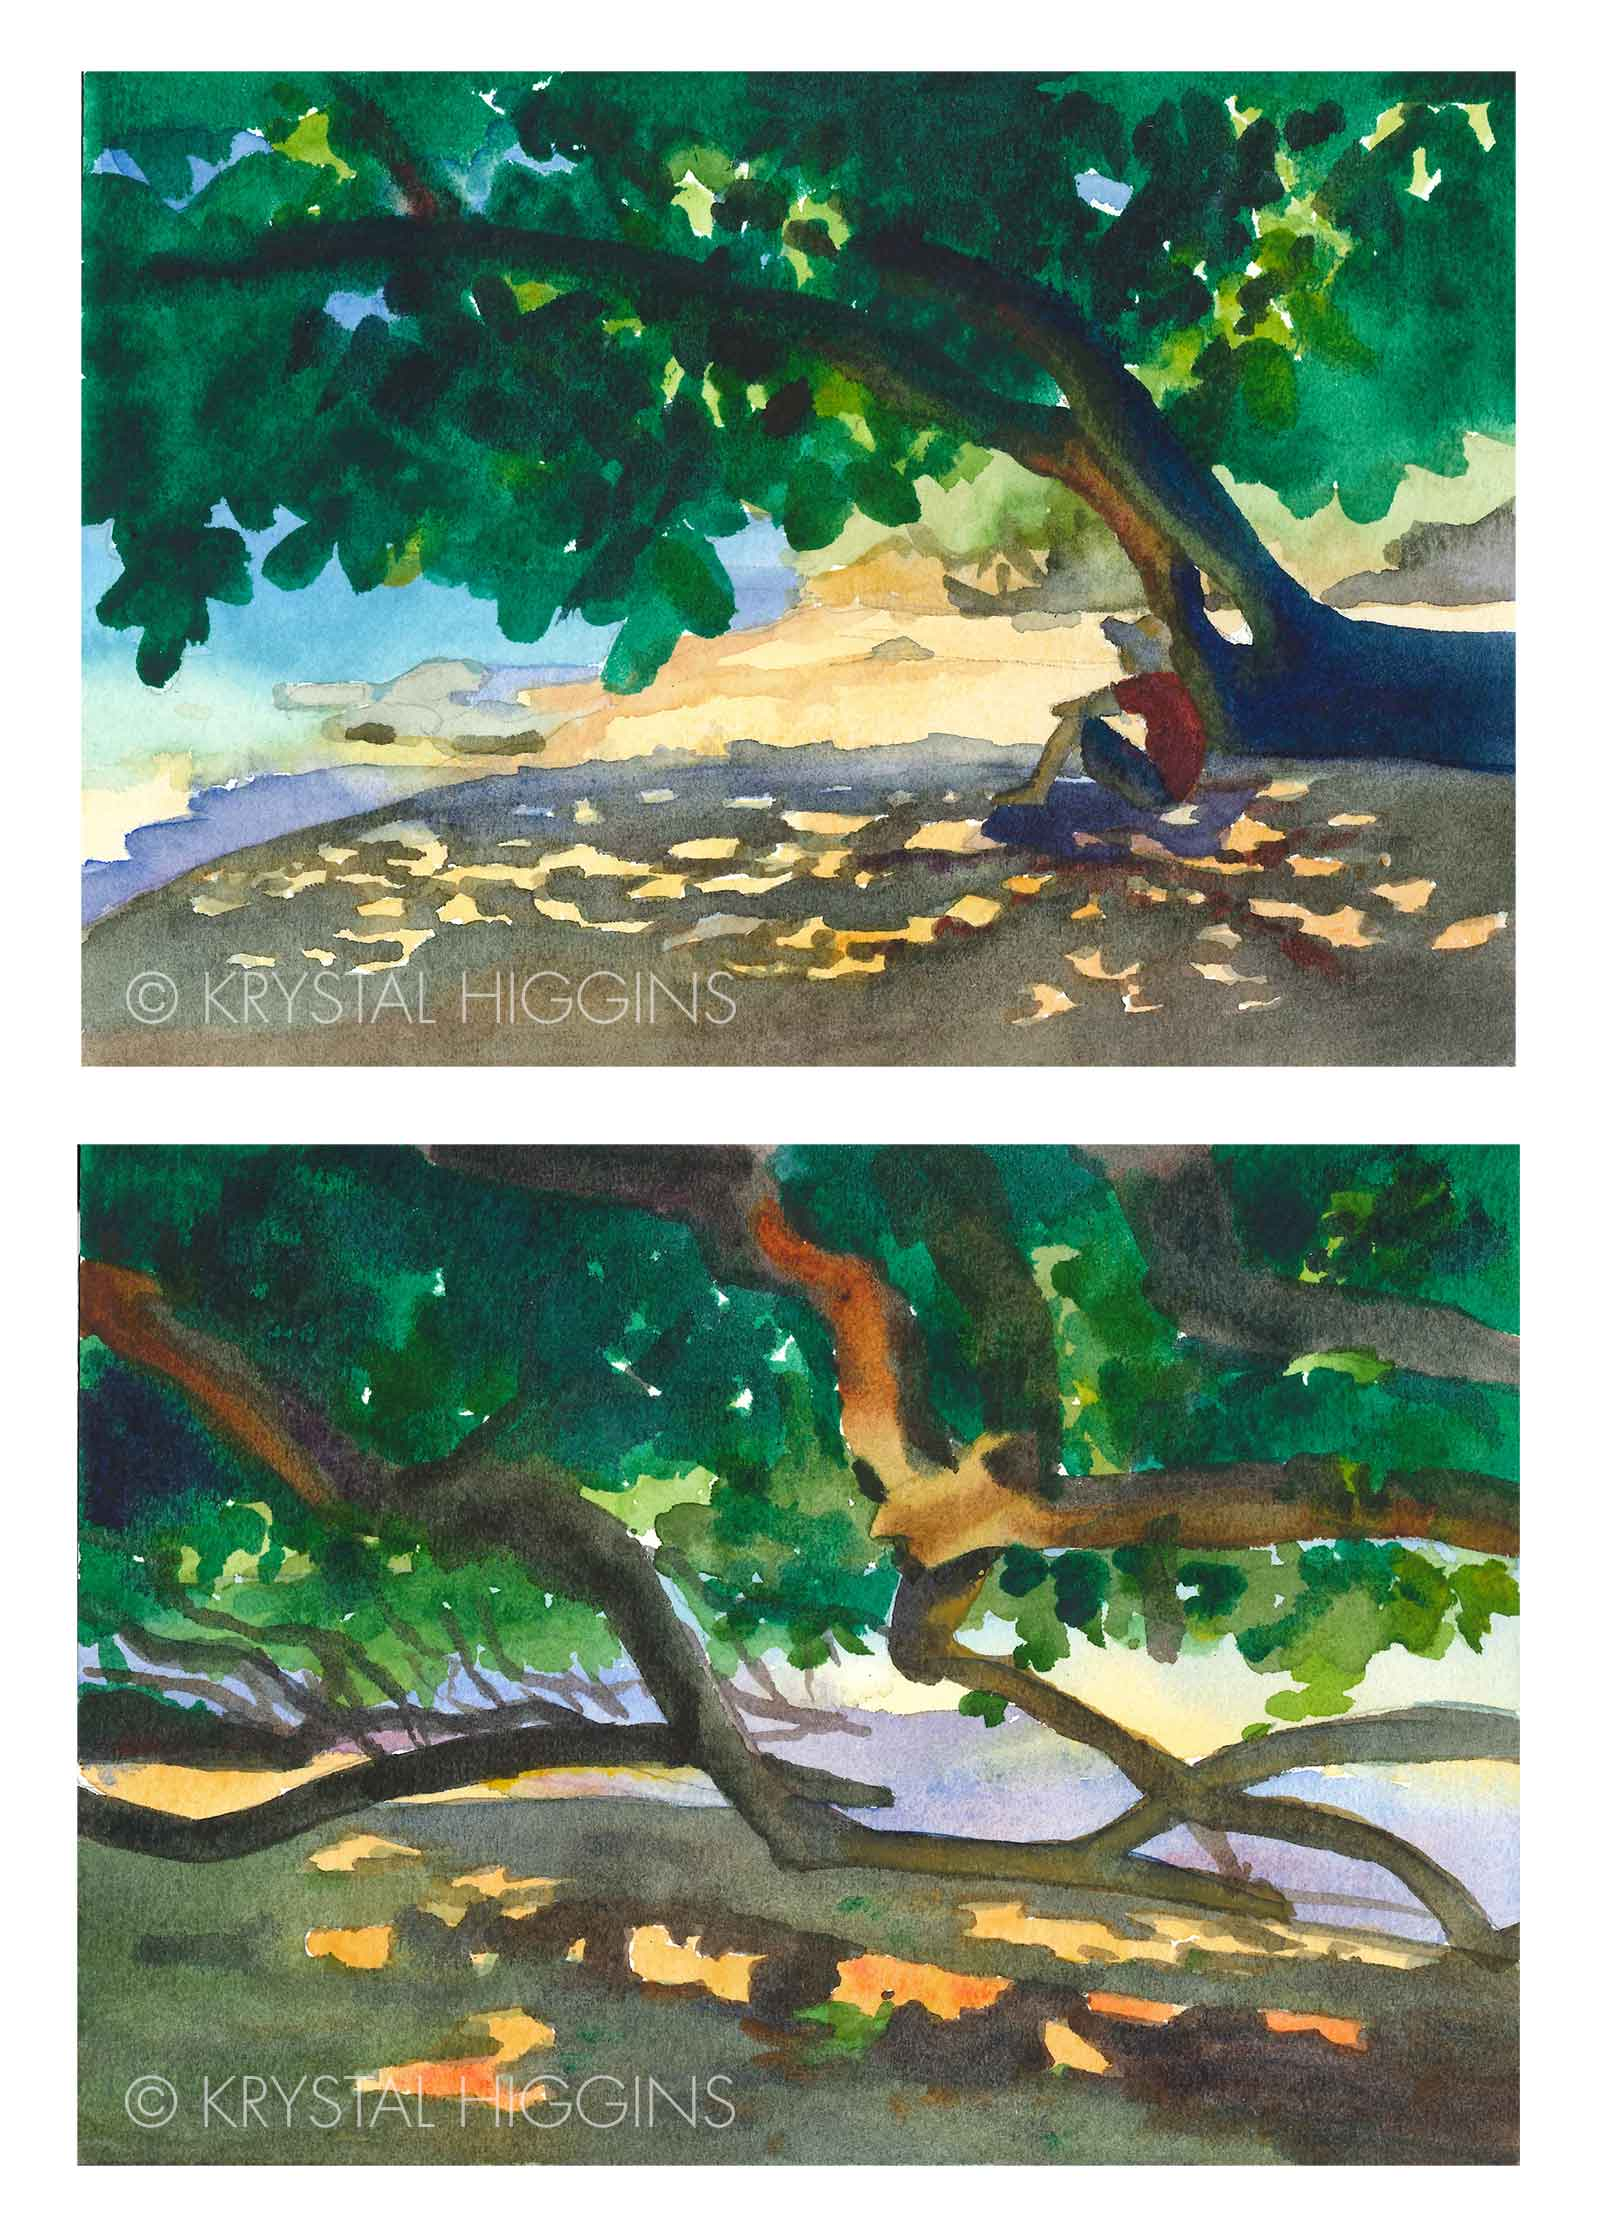 Two watercolor paintings of a beach with light coming through the shade of mangrove tree leaves